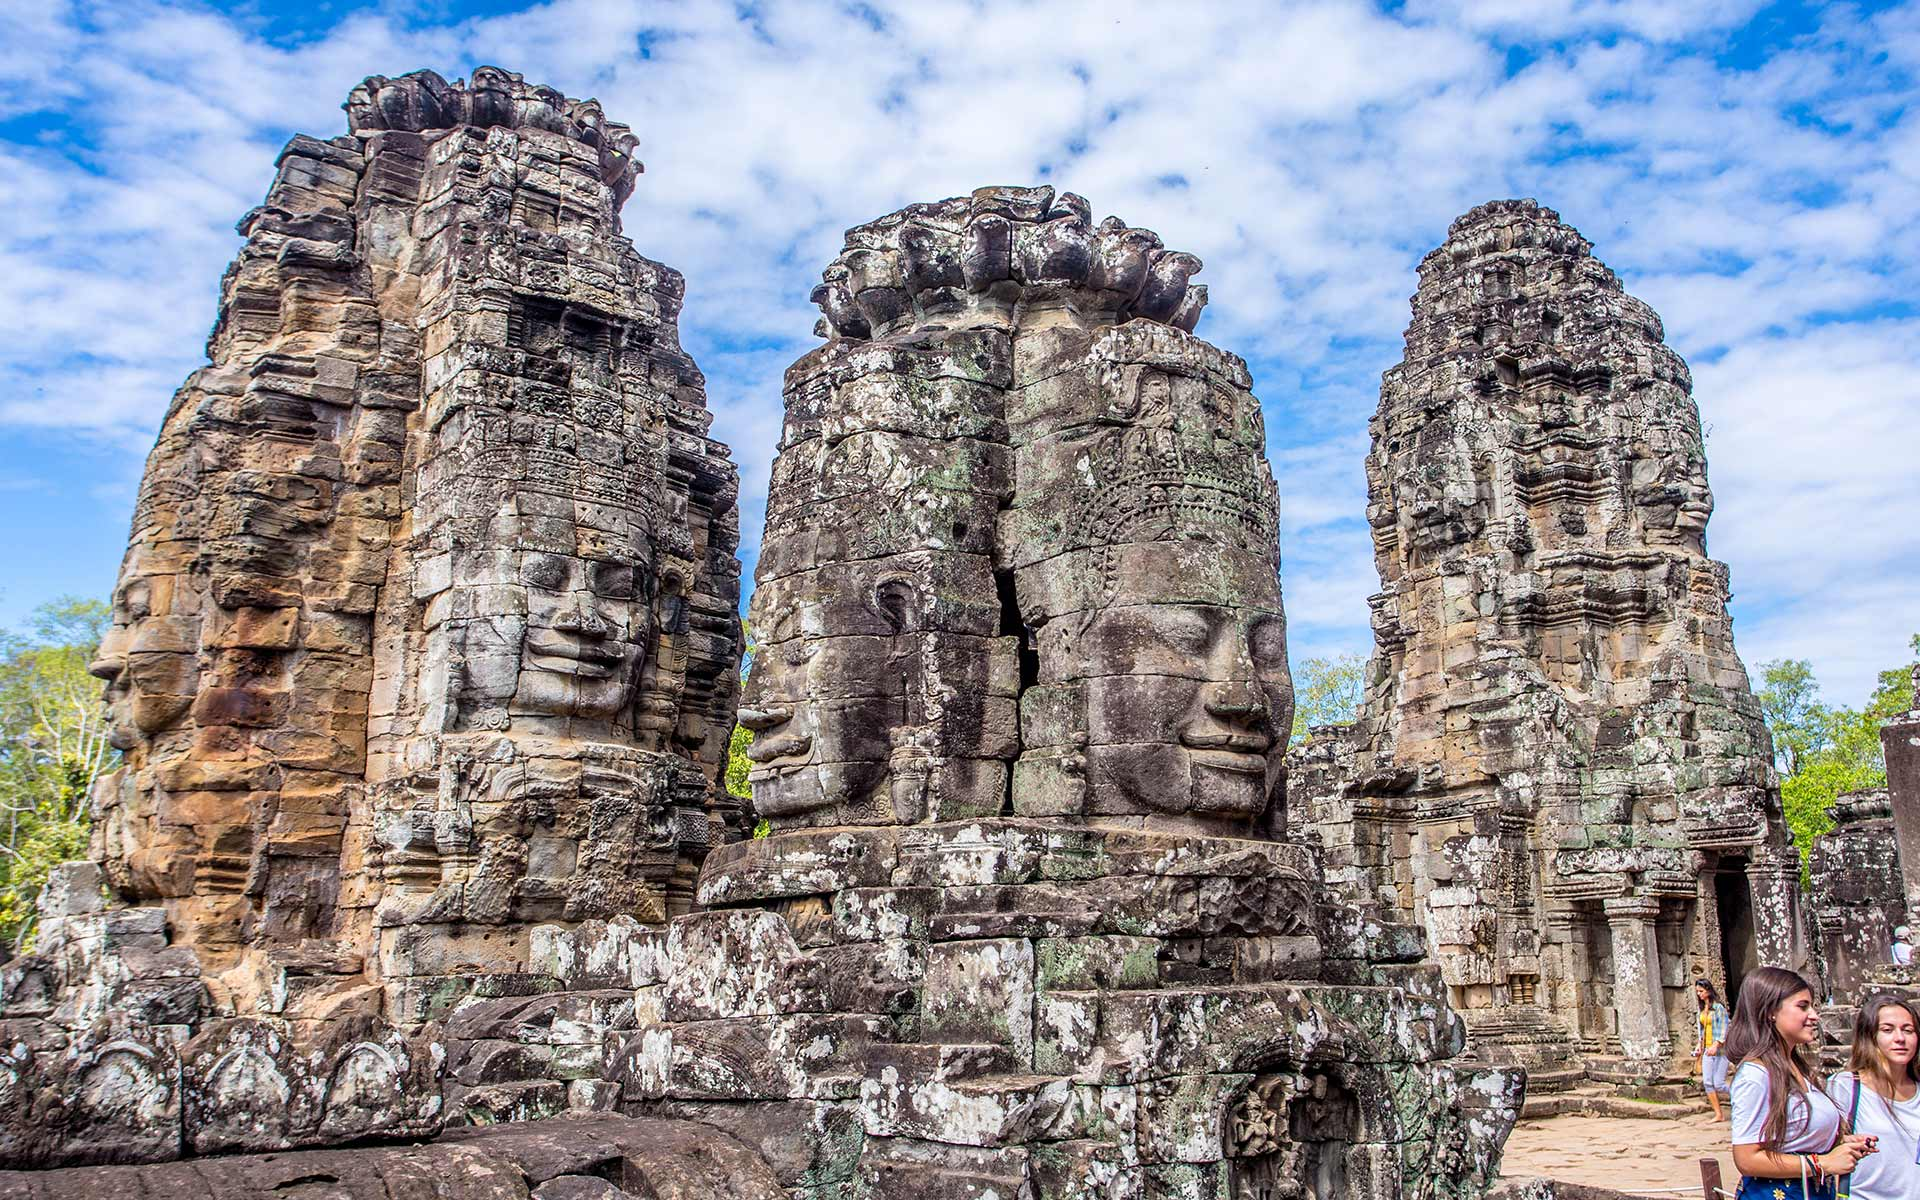 Bayon's face towers